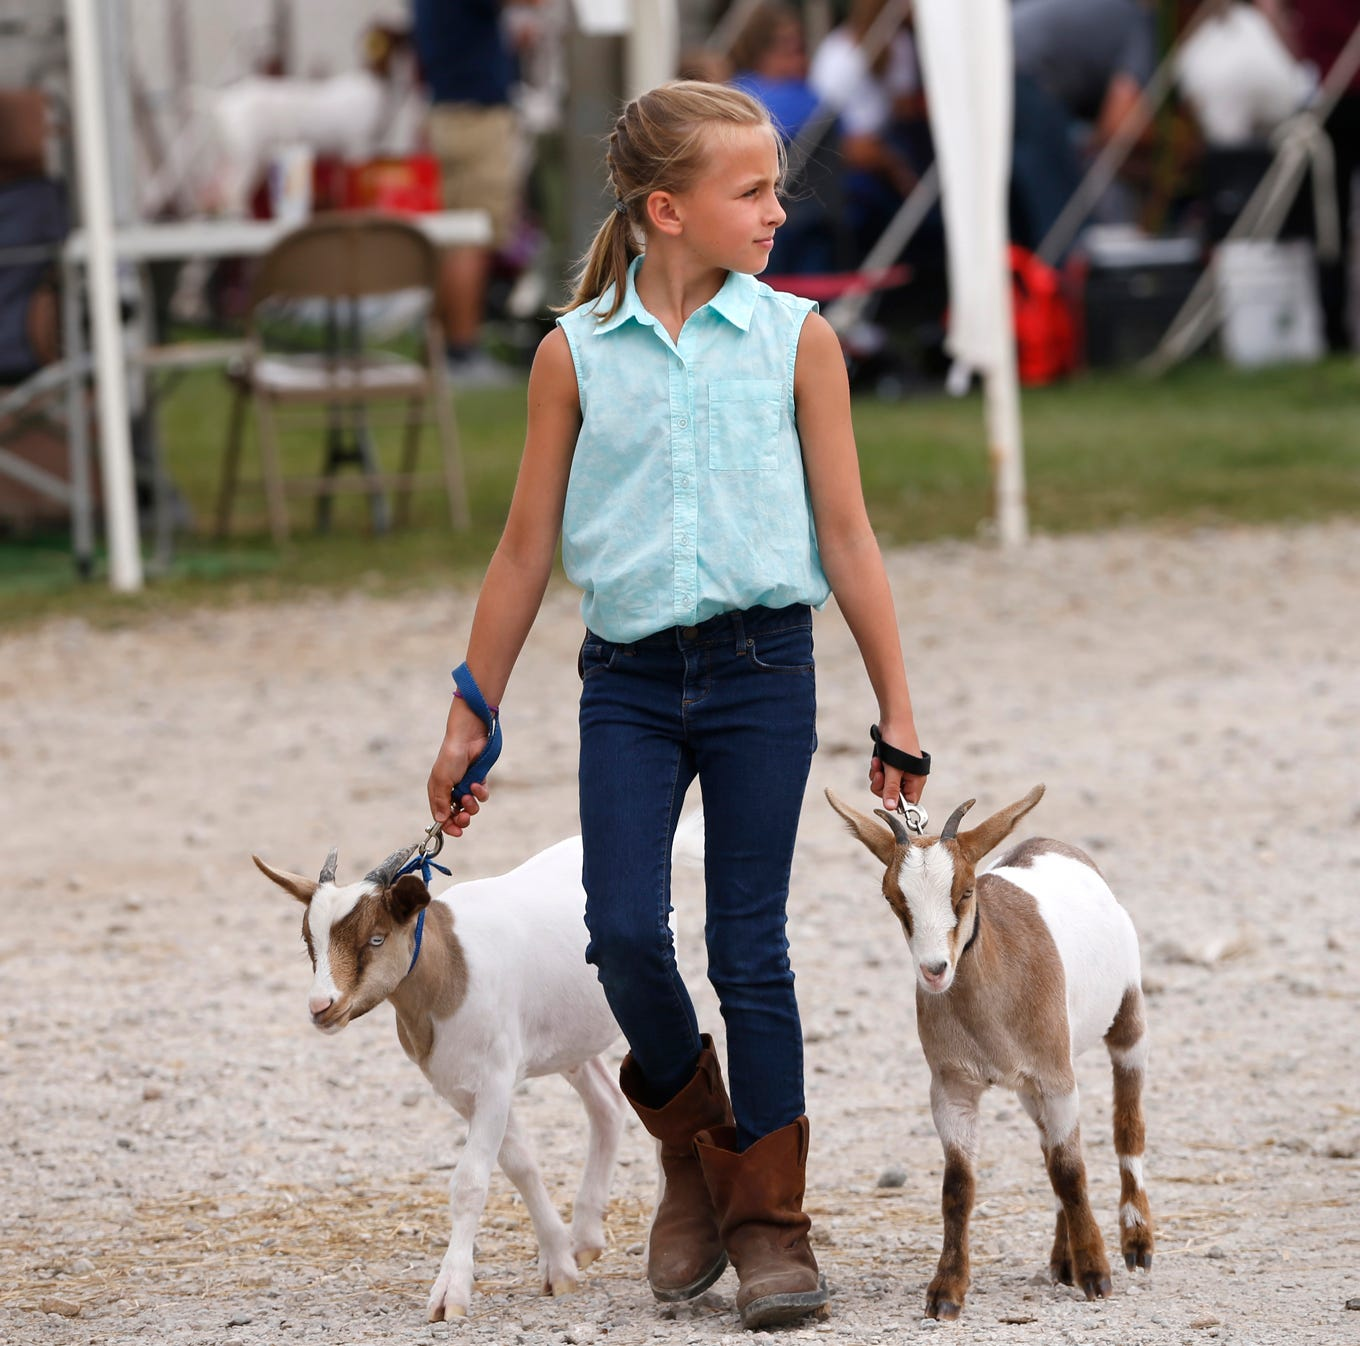 Monday at the Tippecanoe County 4-H Fair